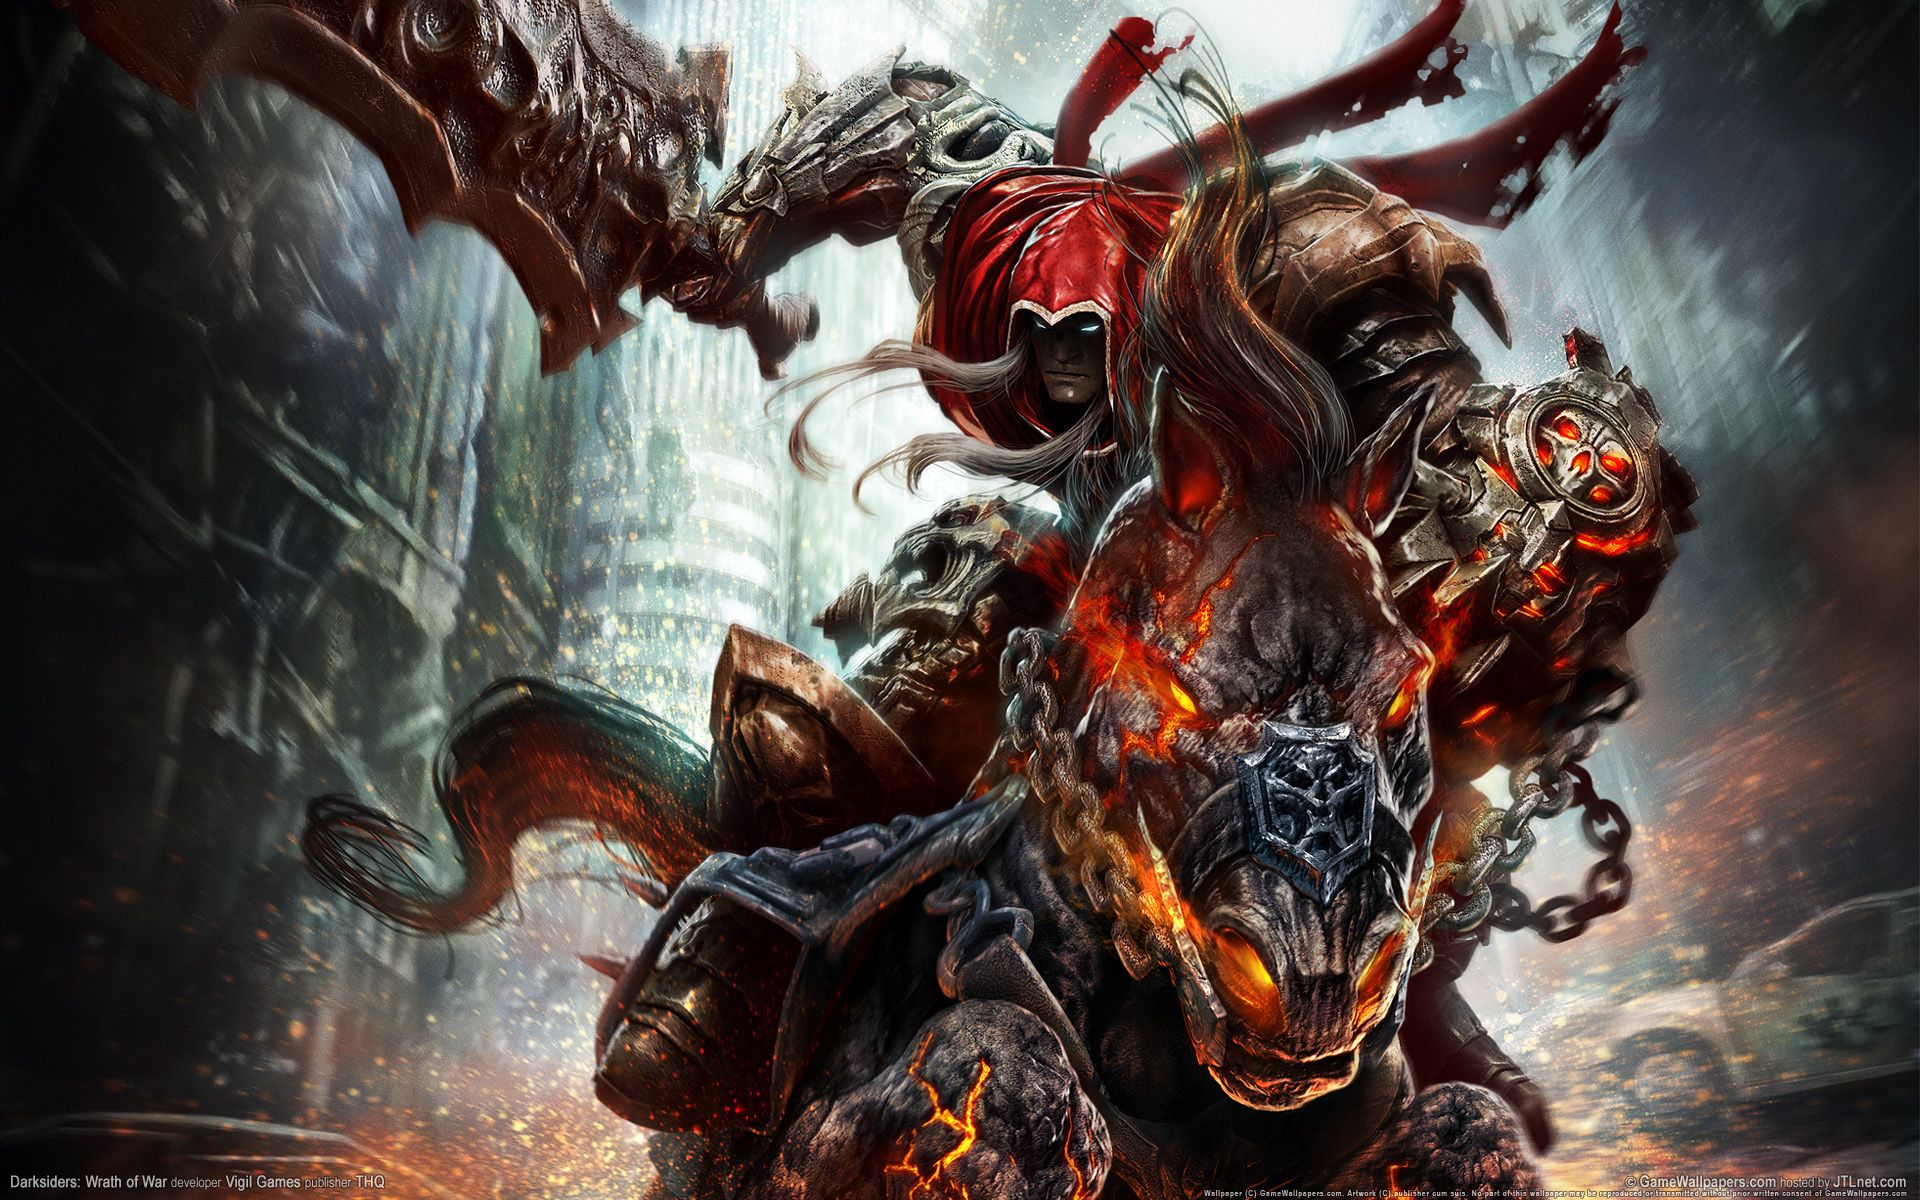 Cool Darksiders Wallpaper